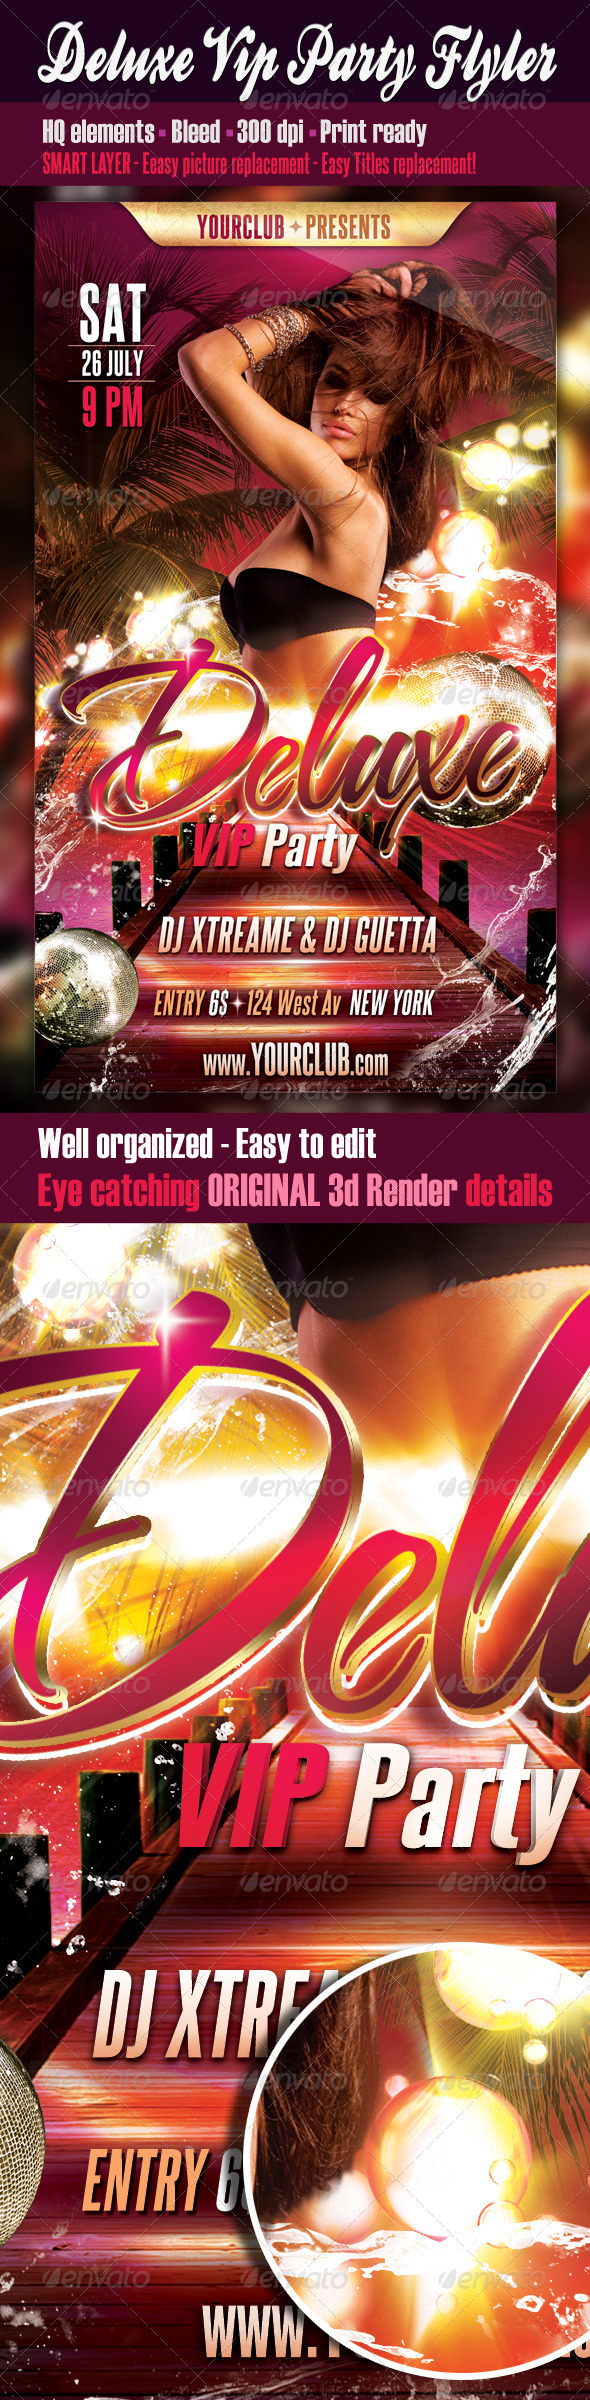 Deluxe Vip Party Flyer - Clubs & Parties Events